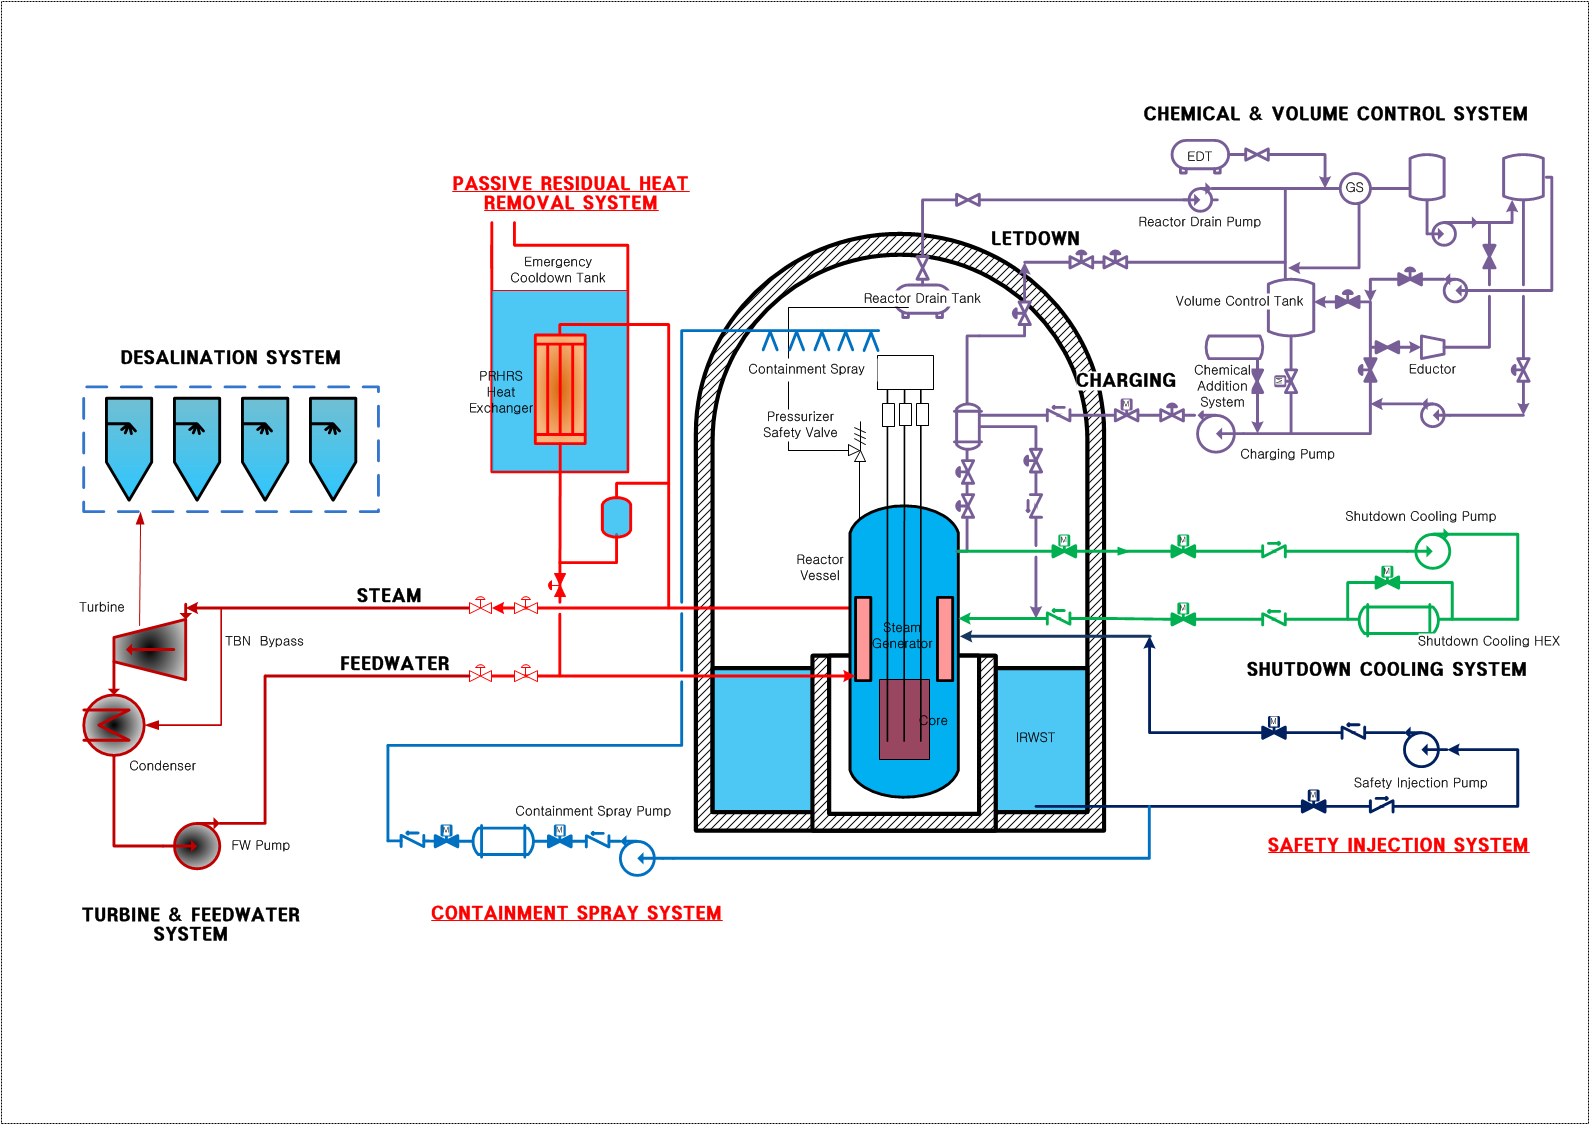 Schematic diagram of SMART safety system